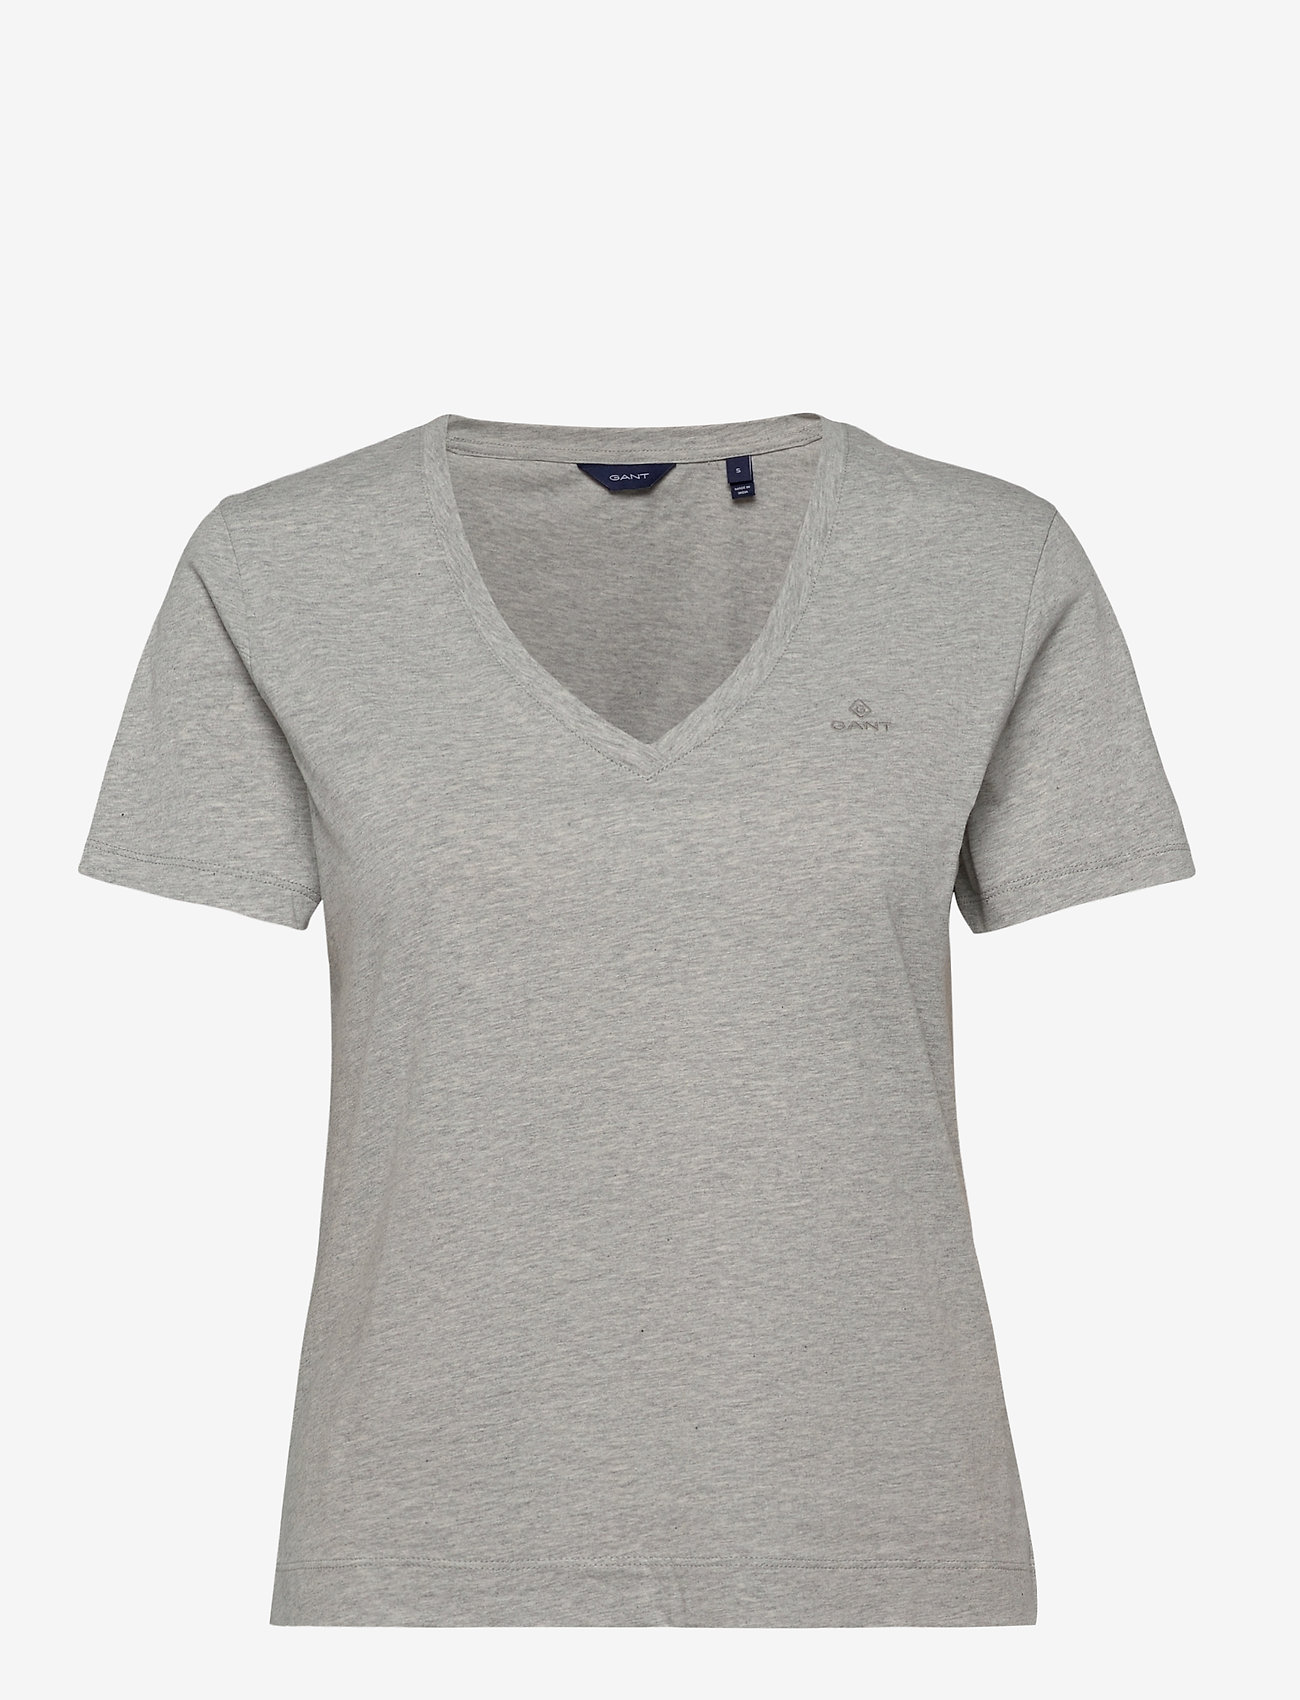 GANT - ORIGINAL V-NECK SS T-SHIRT - t-shirts - light grey melange - 0